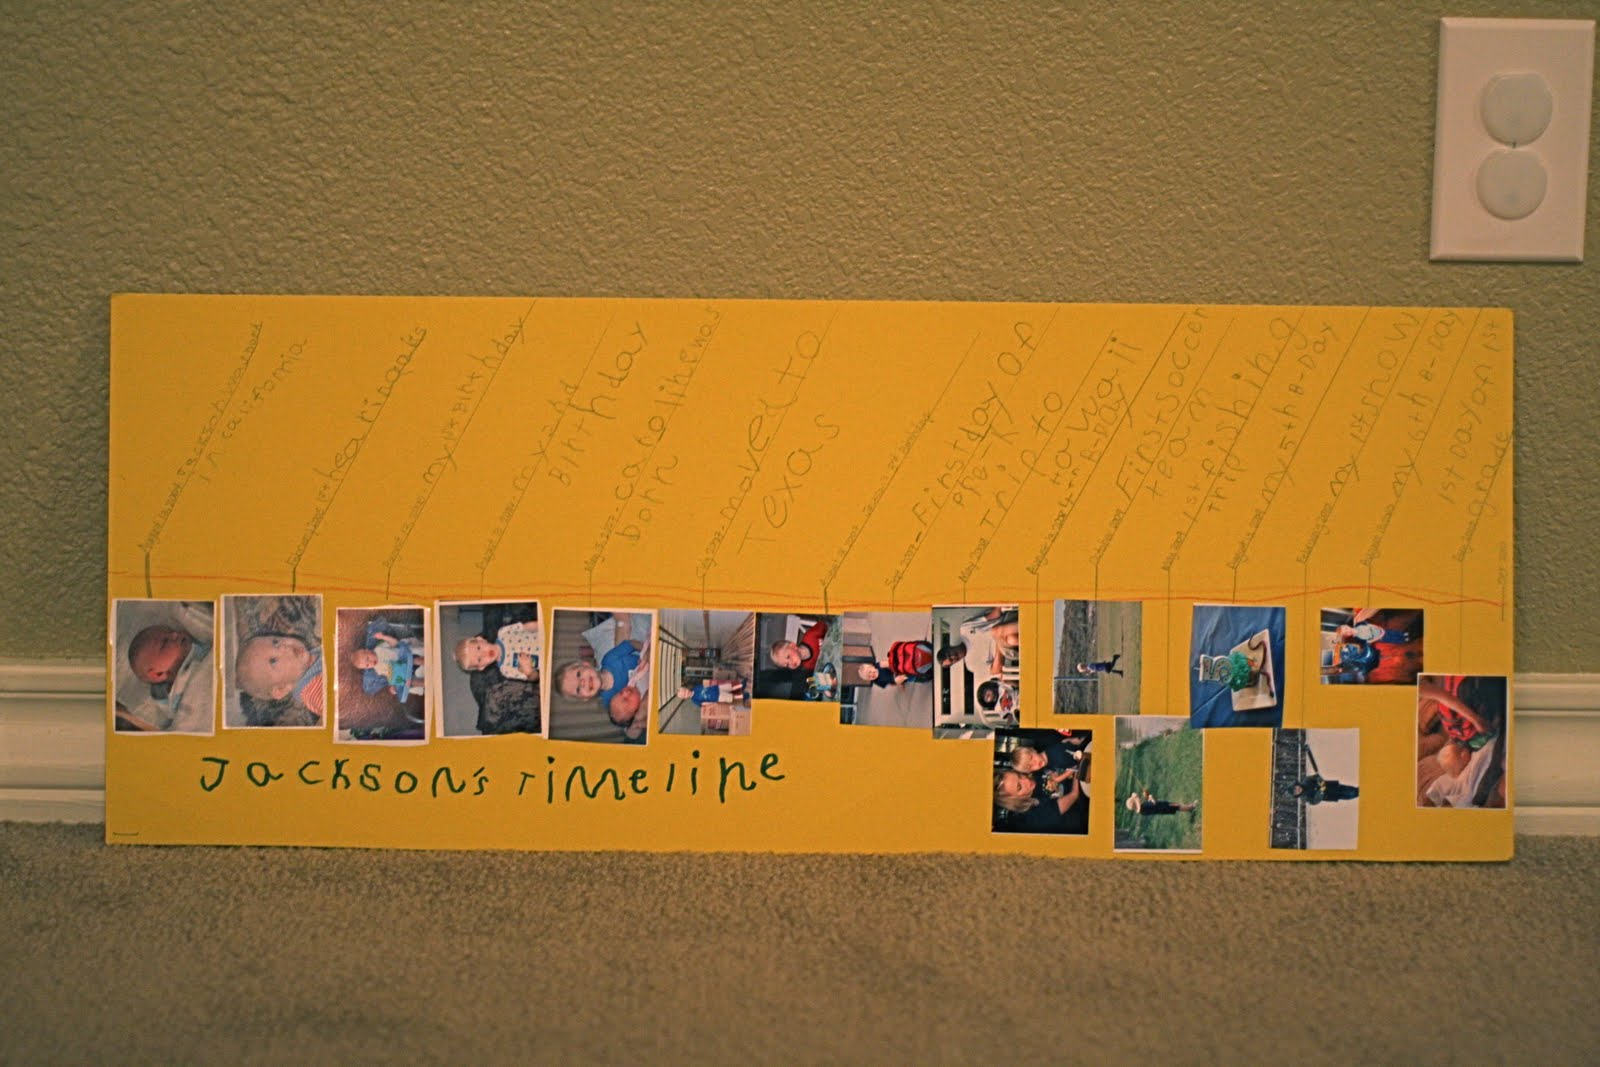 School Timeline Projects http://howard365.blogspot.com/2010/10/day-299-timeline.html